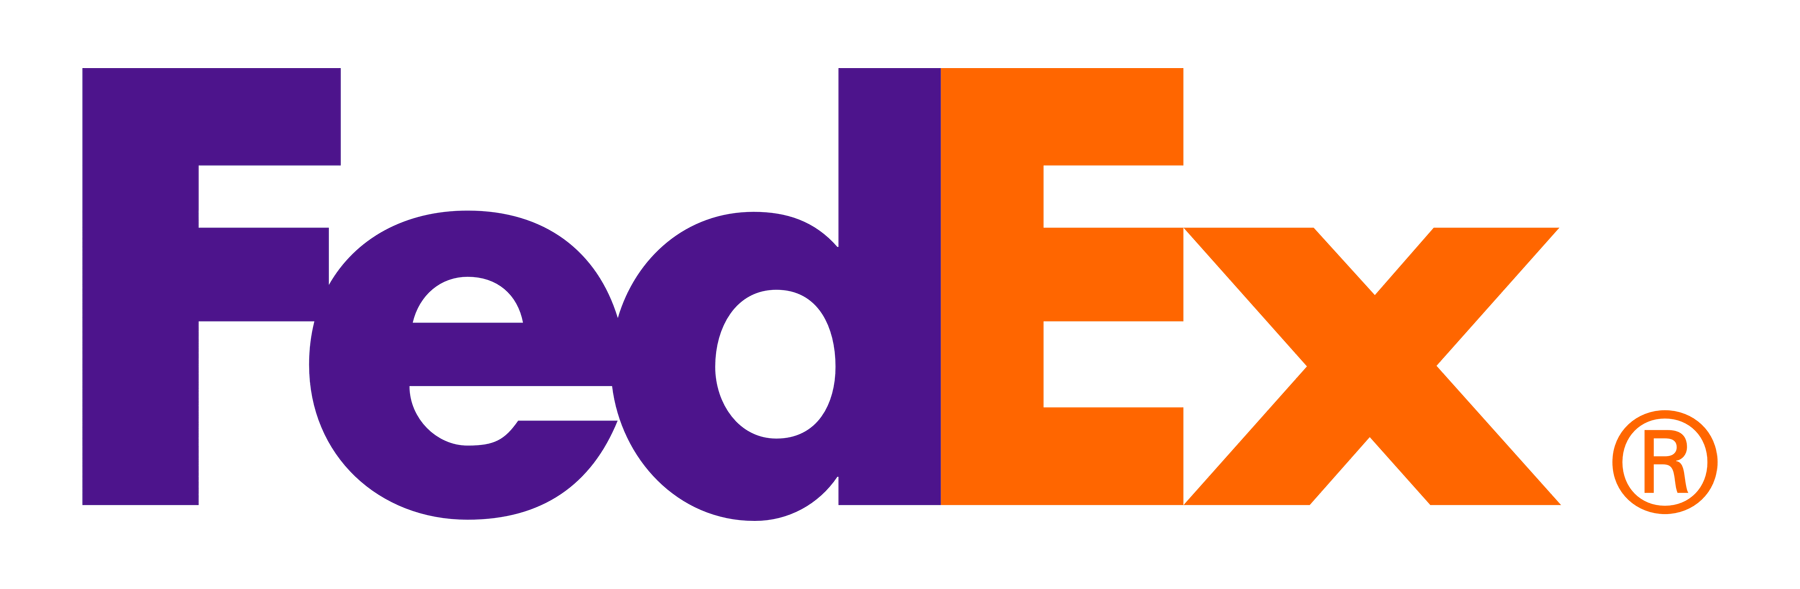 Meaning FedEx logo and symbol | history and evolution